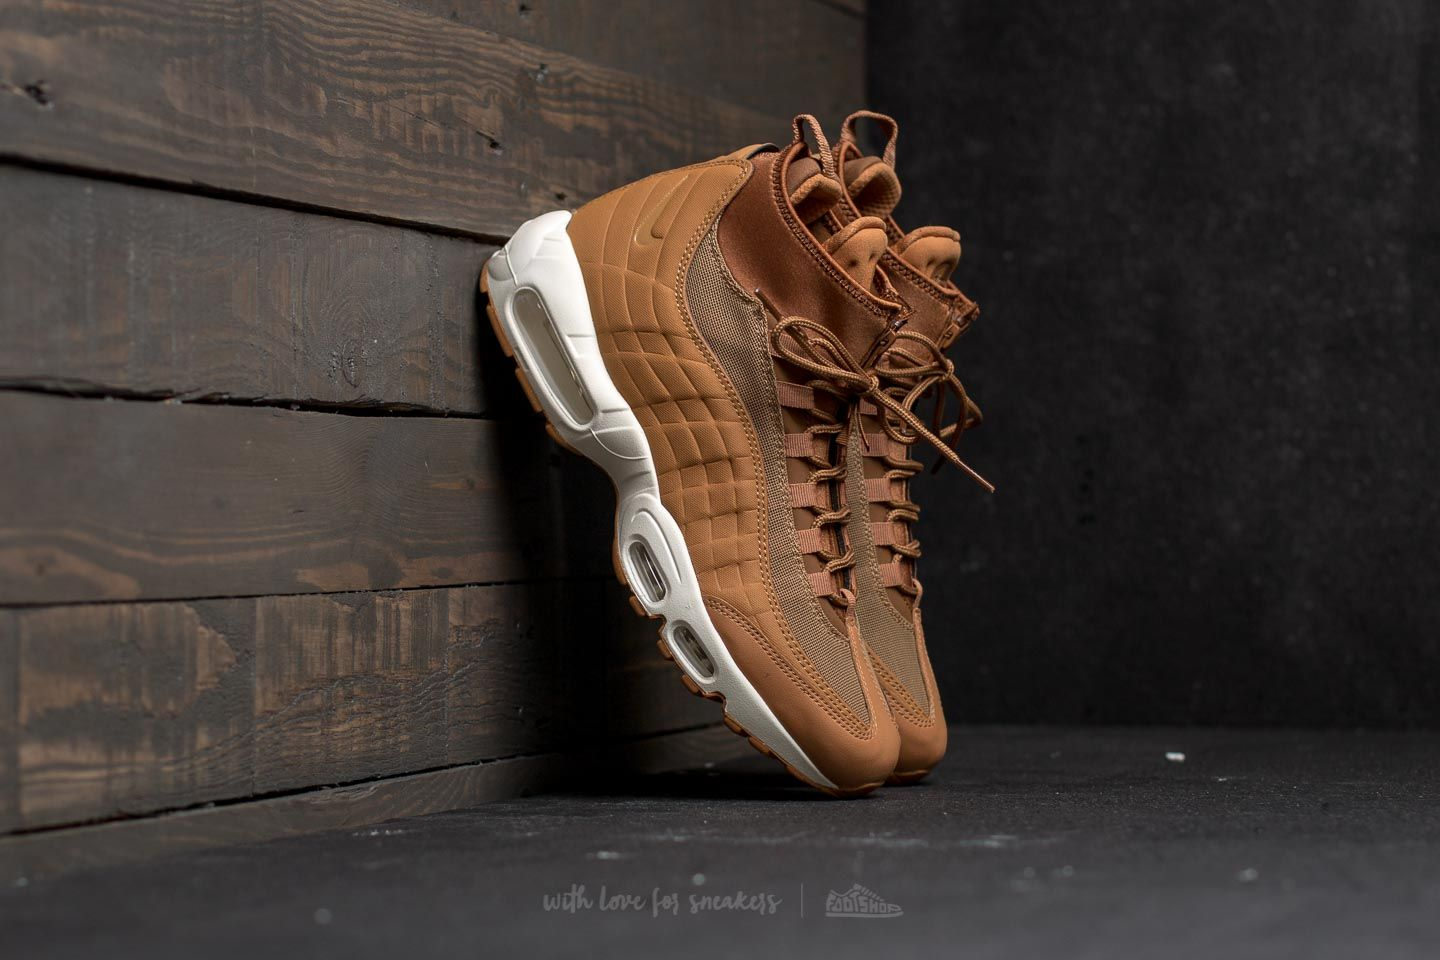 e2ecaec567 Nike Air Max 95 Sneakerboot Flax/ Flax-Ale Brown-Sail | Footshop